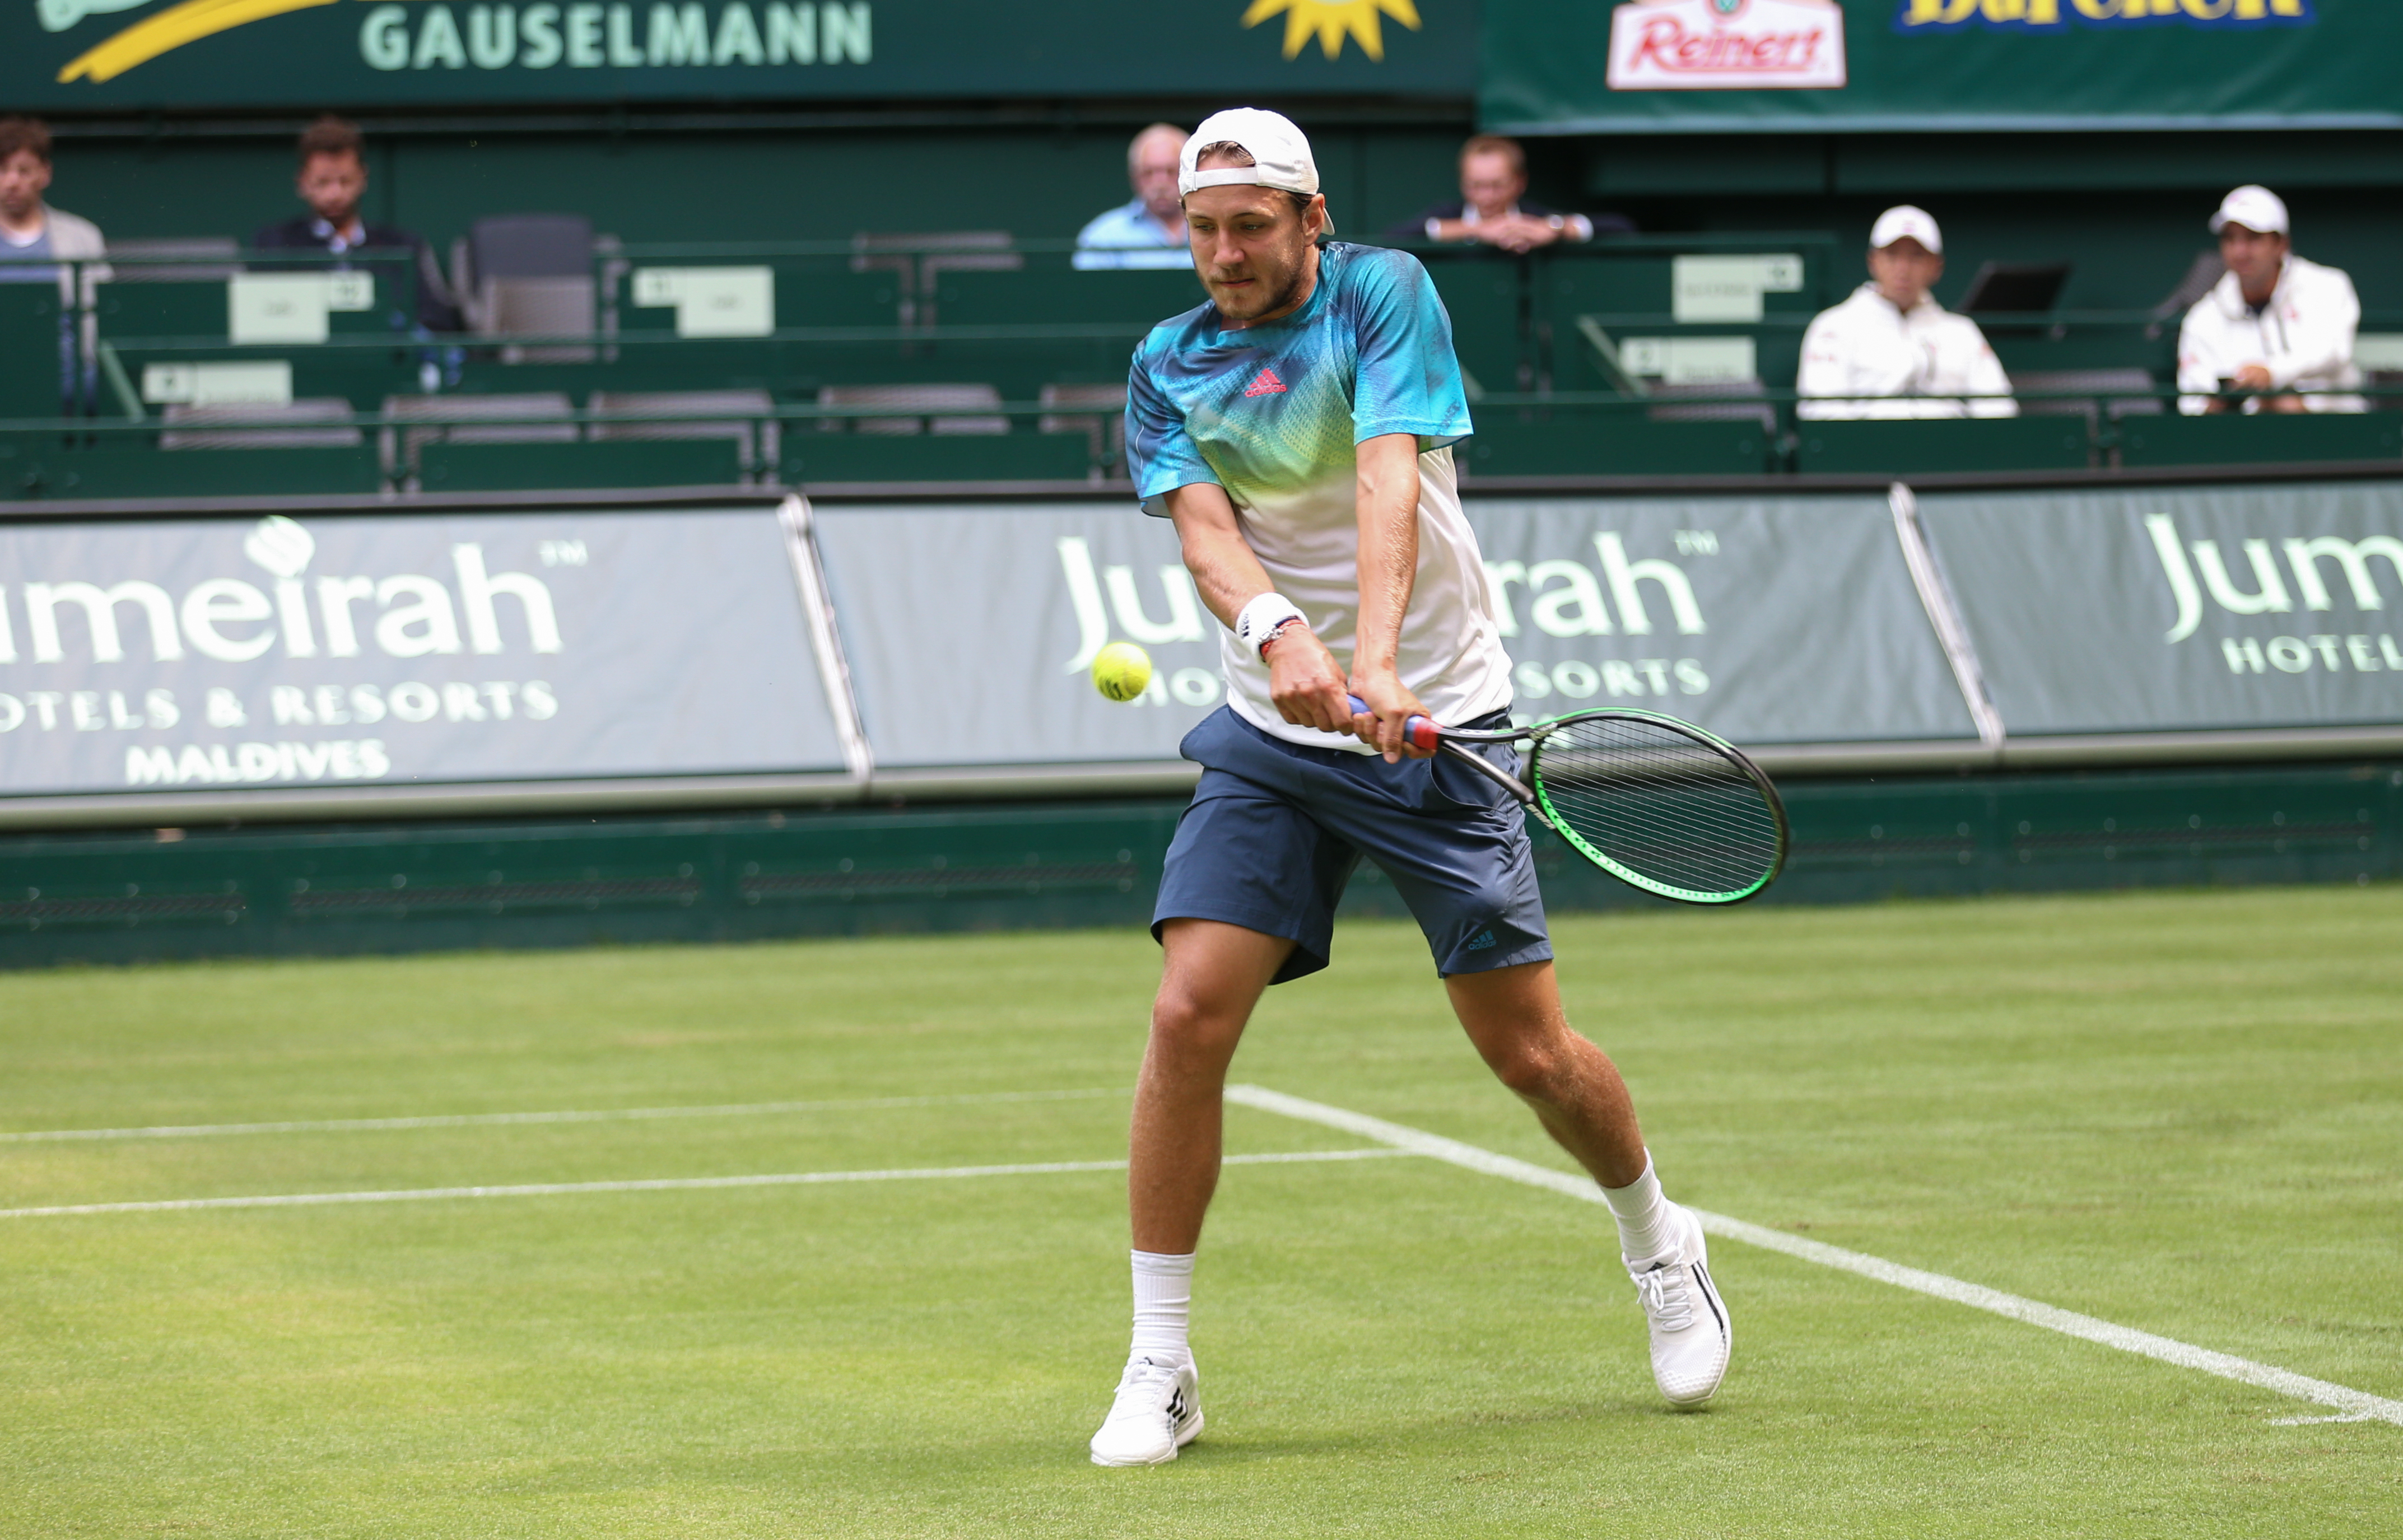 Lucas Pouille of France competes during his match against Kei Nishikori of Japan at the ATPtennis tournament in Halle,  Germany, Monday June  13 , 2016.   (Friso Gentsch/dpa via AP)